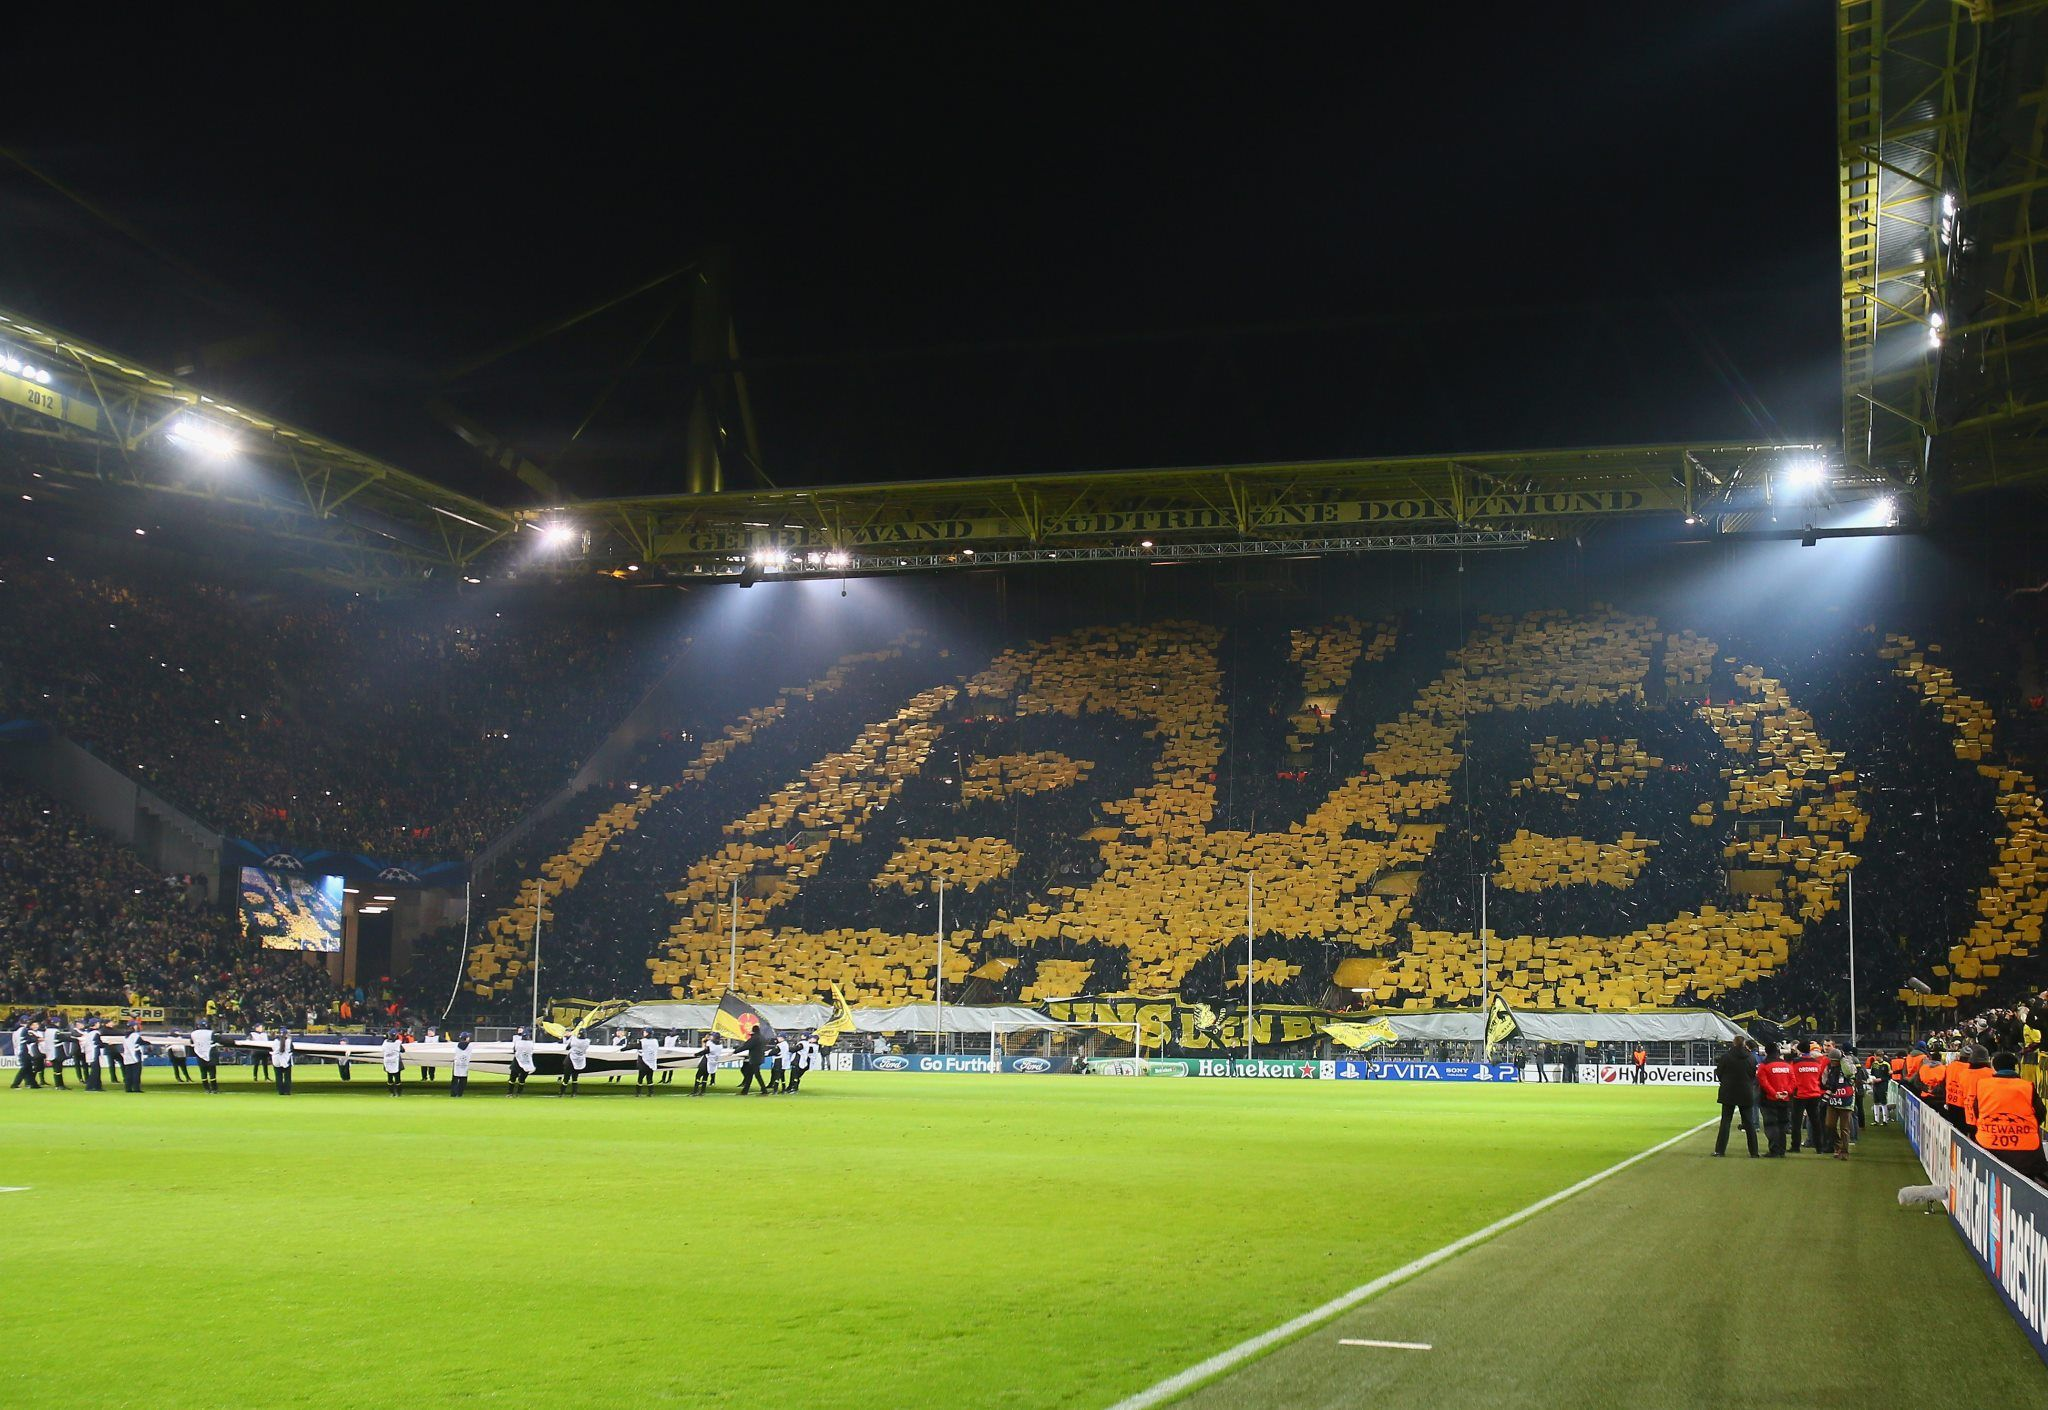 Dortmund Shopping Center Westfalenstadion Borussia Dortmund This Is Where We